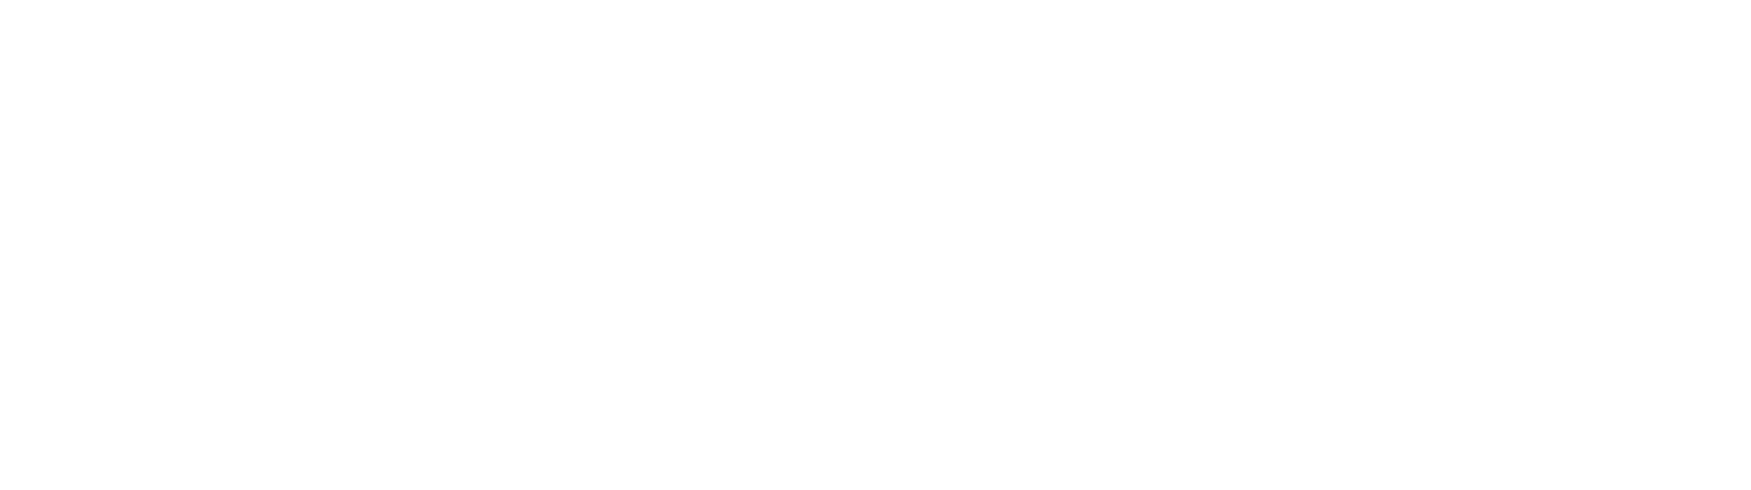 Publisher Research Council